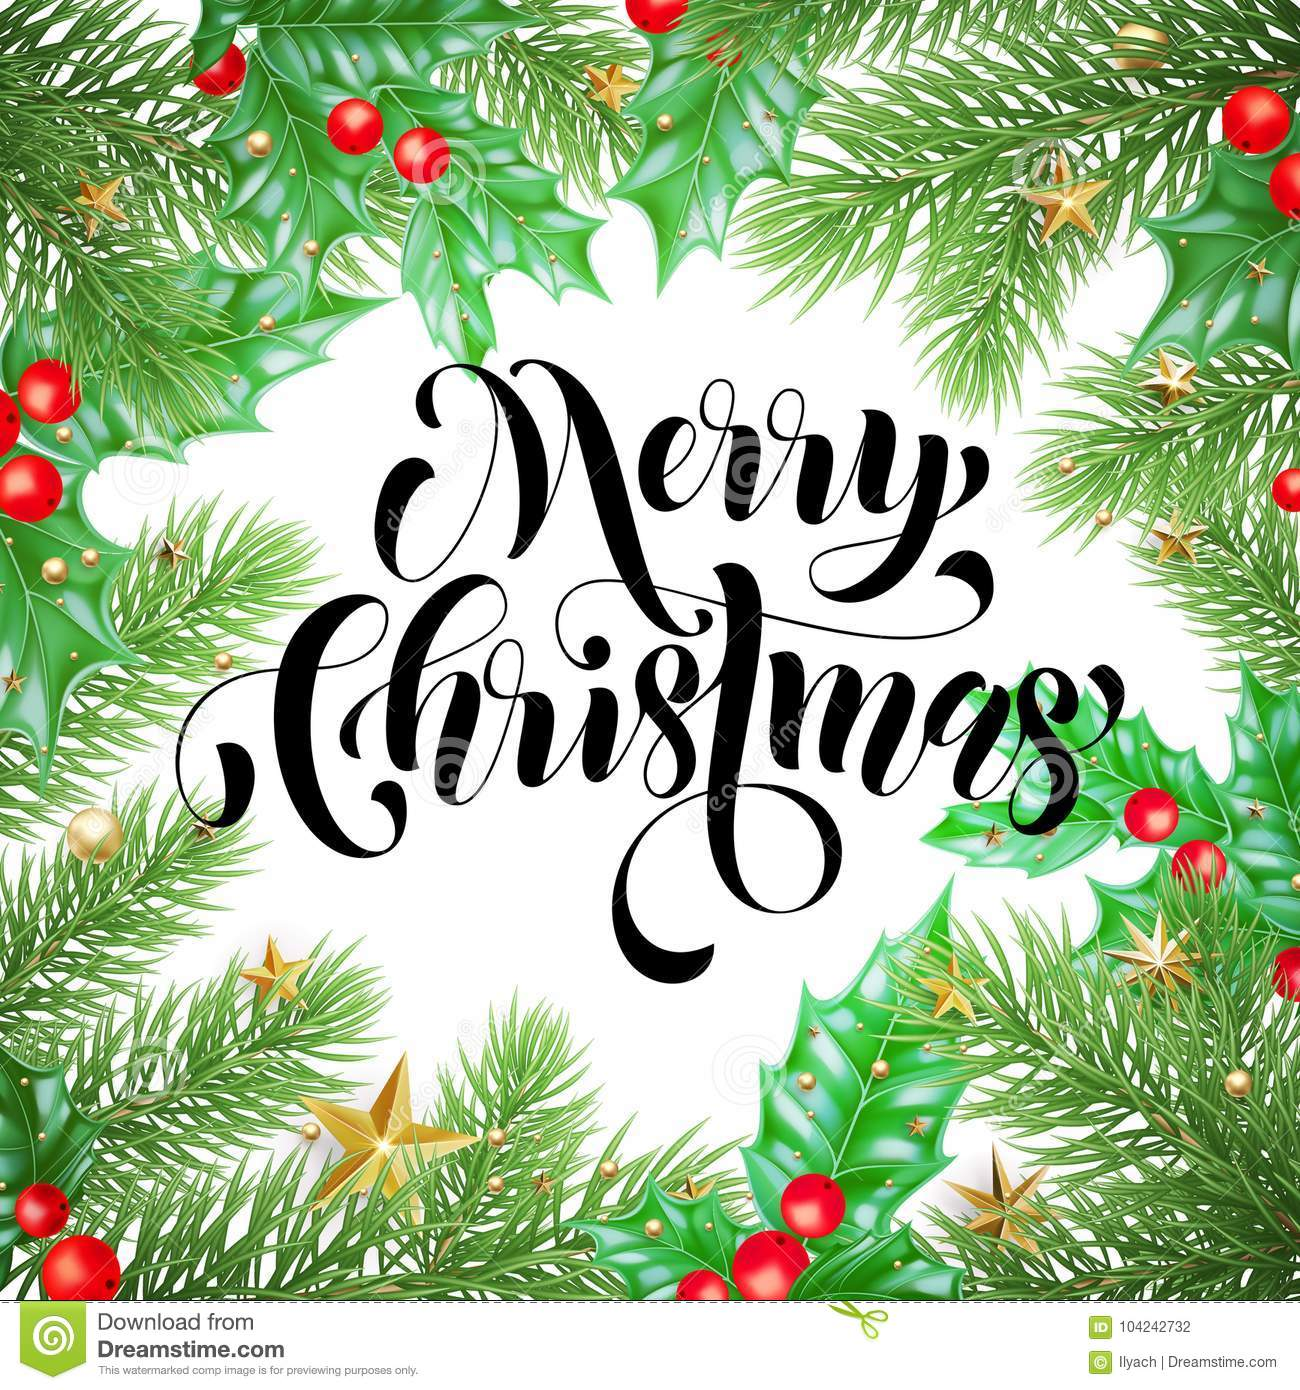 Merry christmas holiday hand drawn quote calligraphy greeting card merry christmas holiday hand drawn quote calligraphy greeting card background template vector christmas tree or maxwellsz